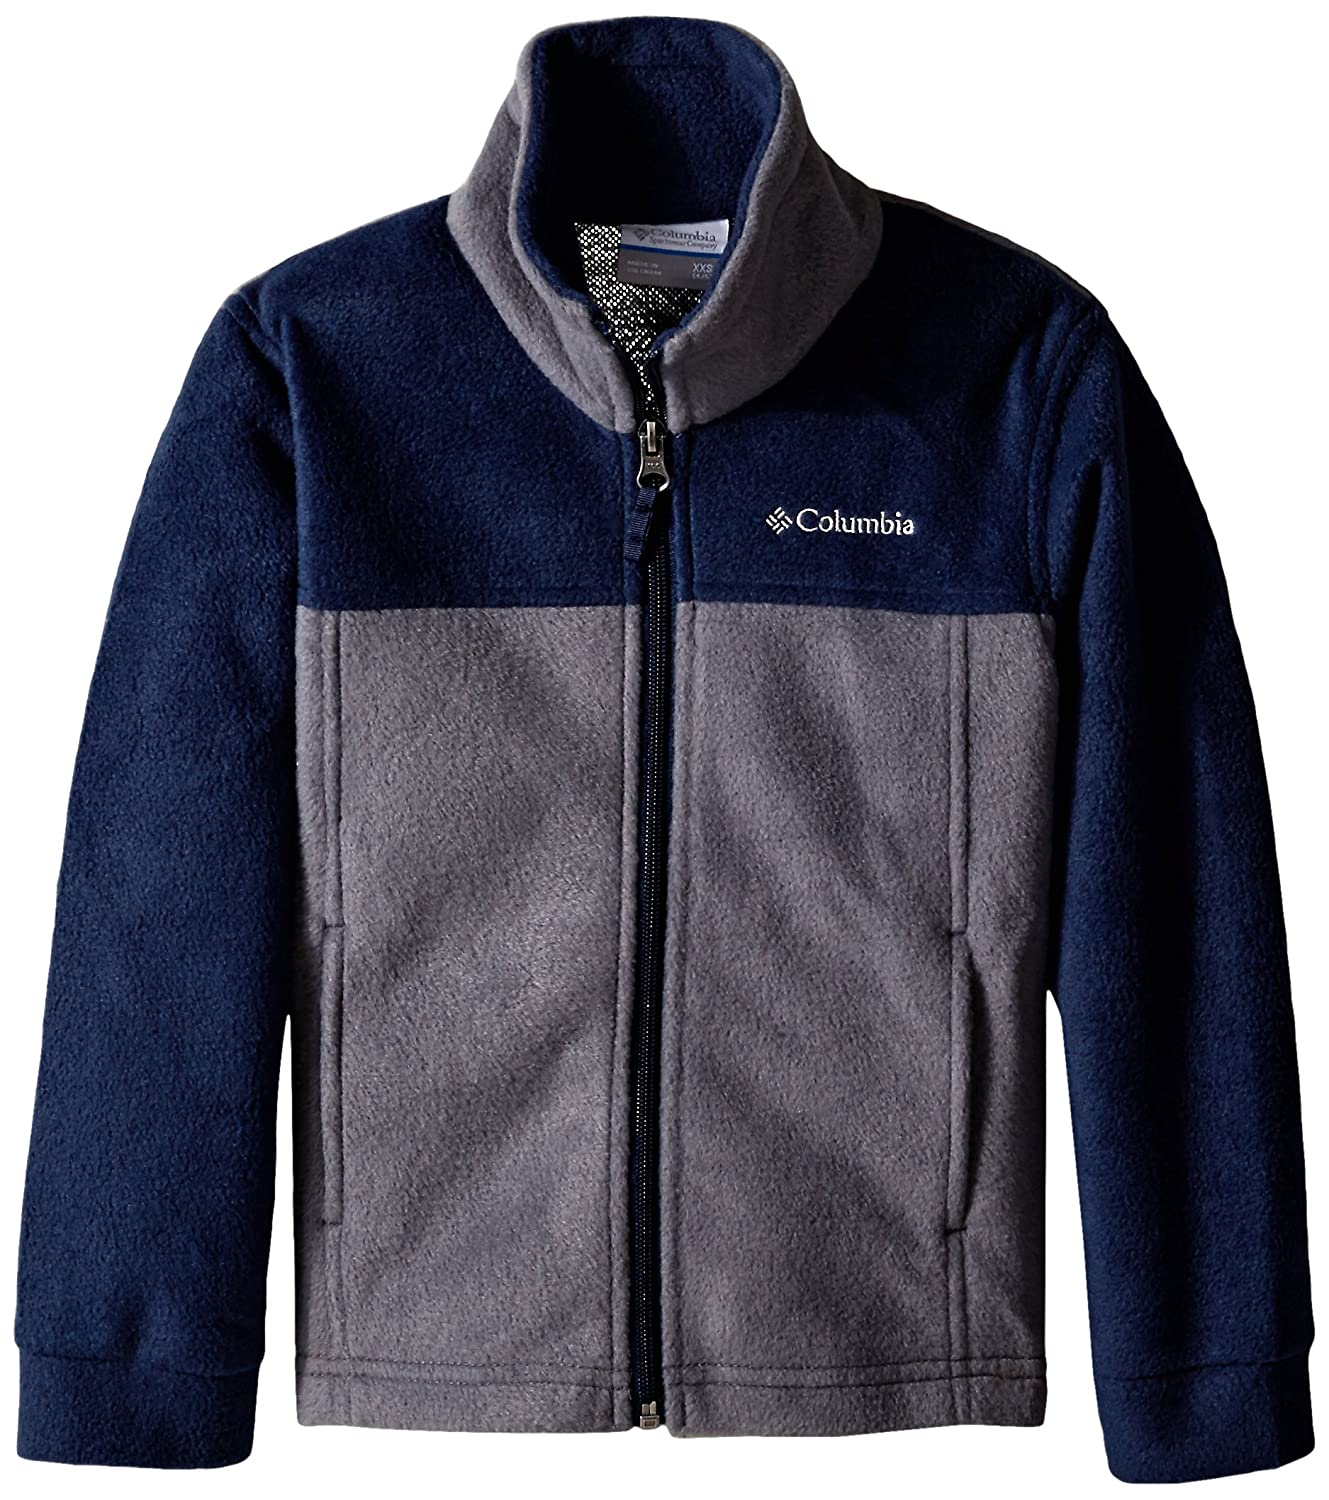 Columbia Sportswear Boy's Dotswarm Full Zip Jacket Columbia (Sporting Goods) WB6776-359